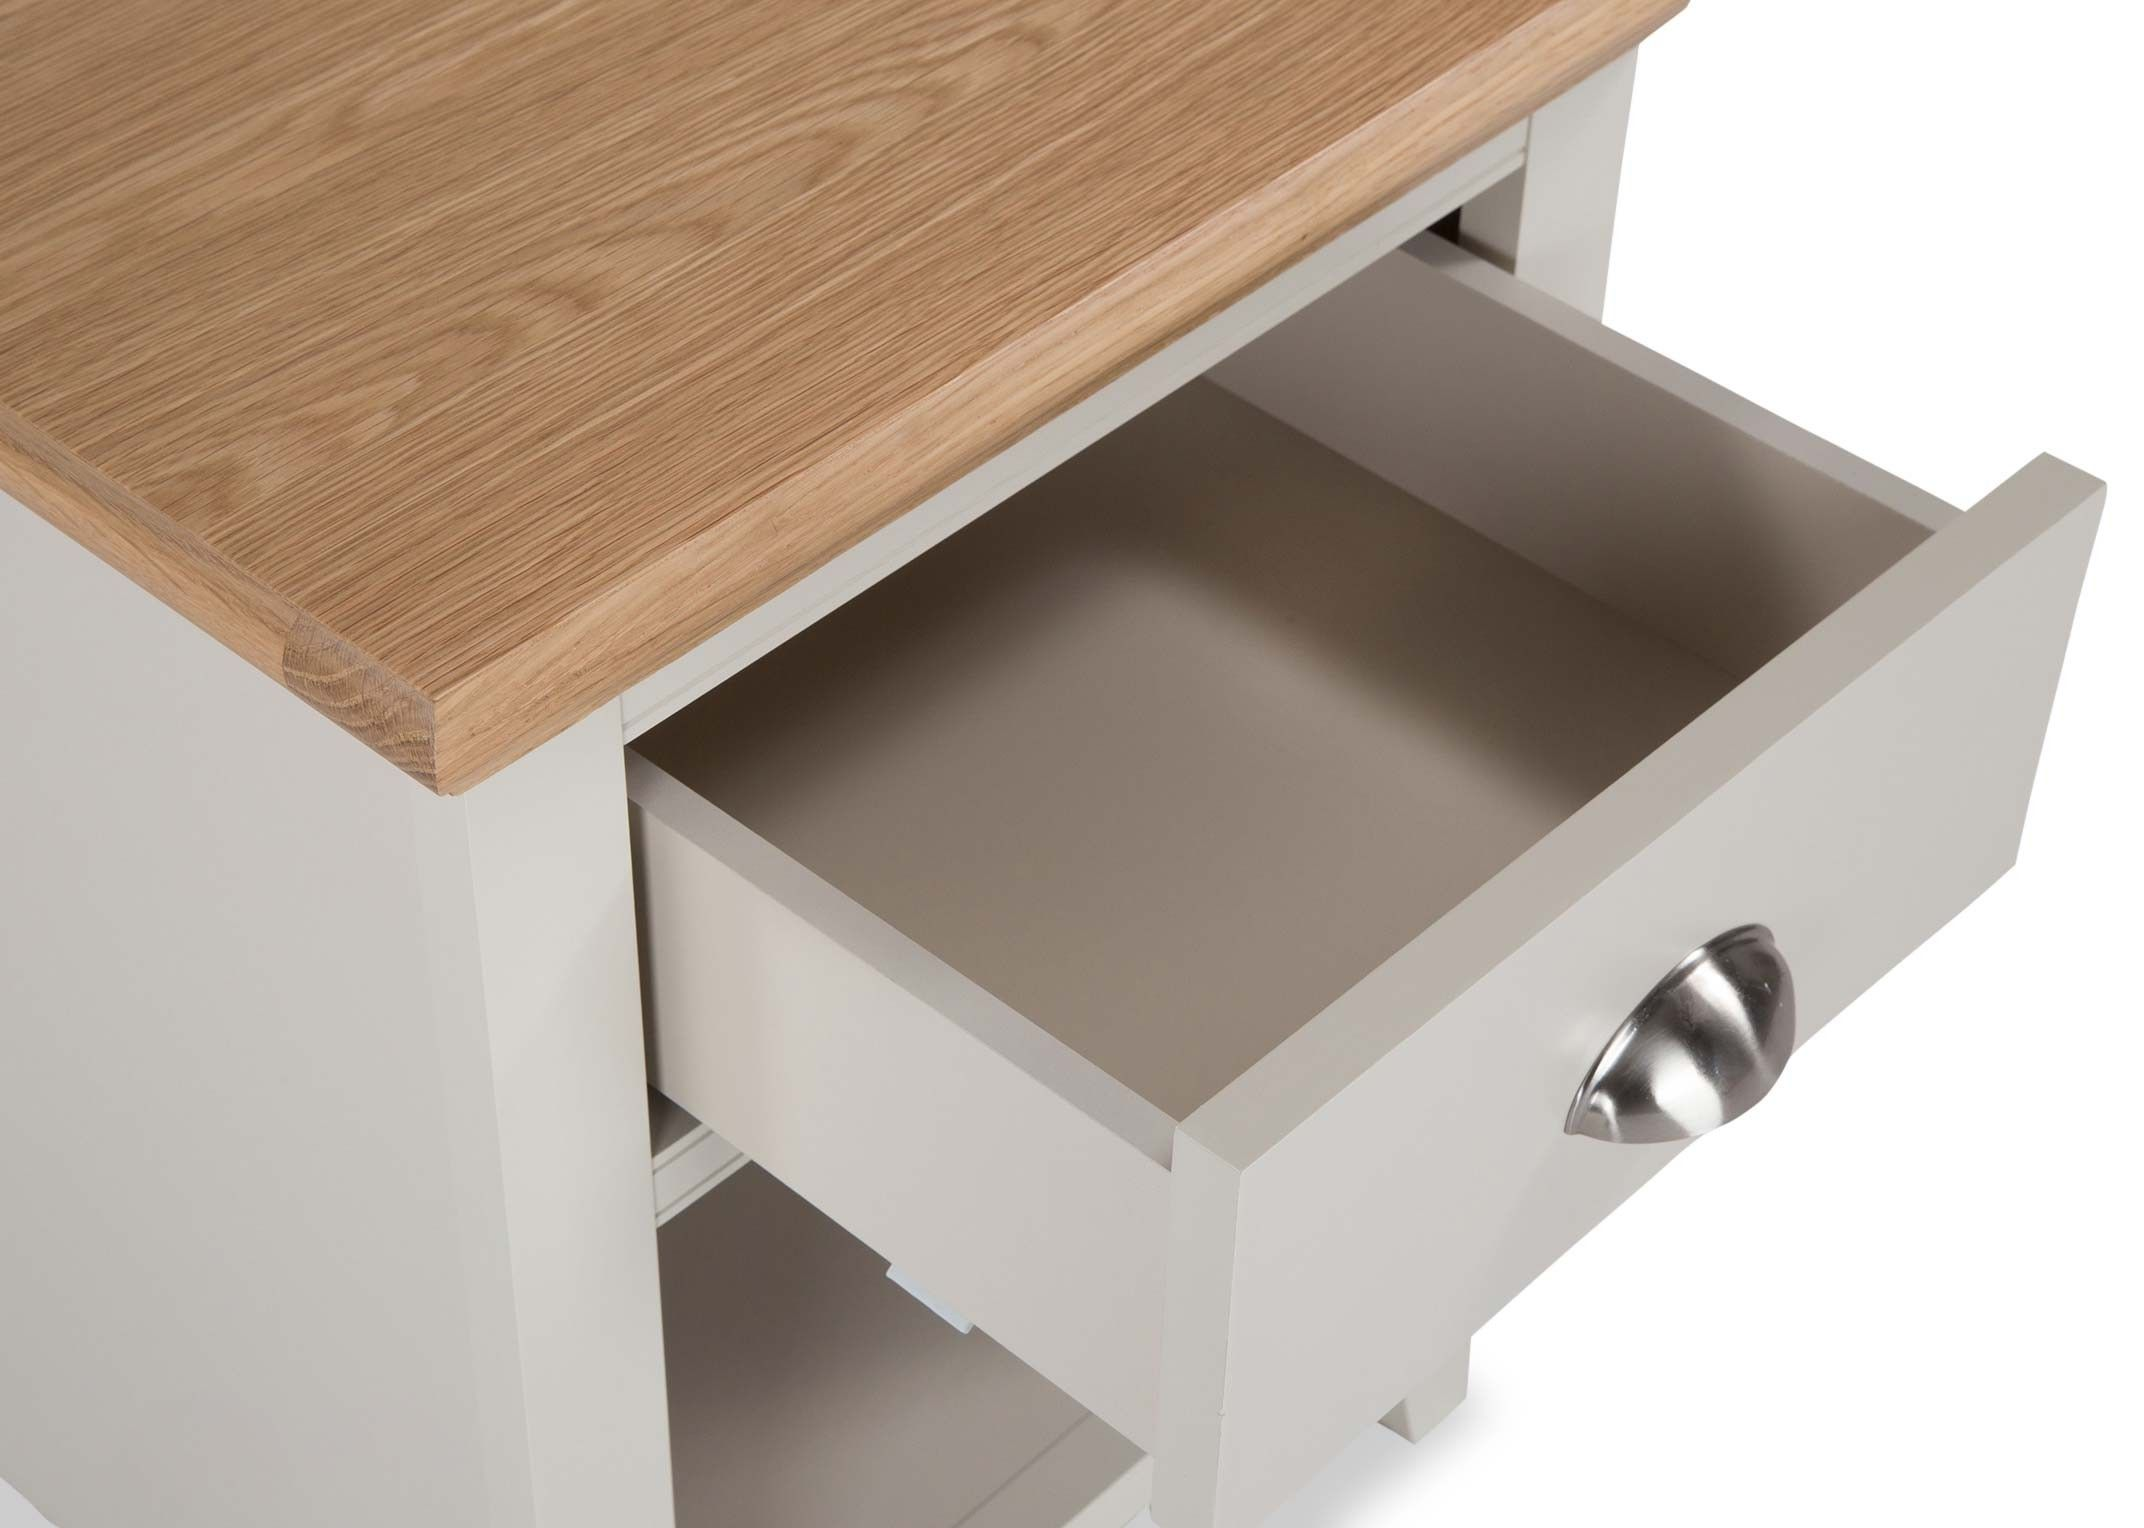 KYRA TWOTONE NIGHTSTAND - SOFT CLOSING DRAWER DETAIL